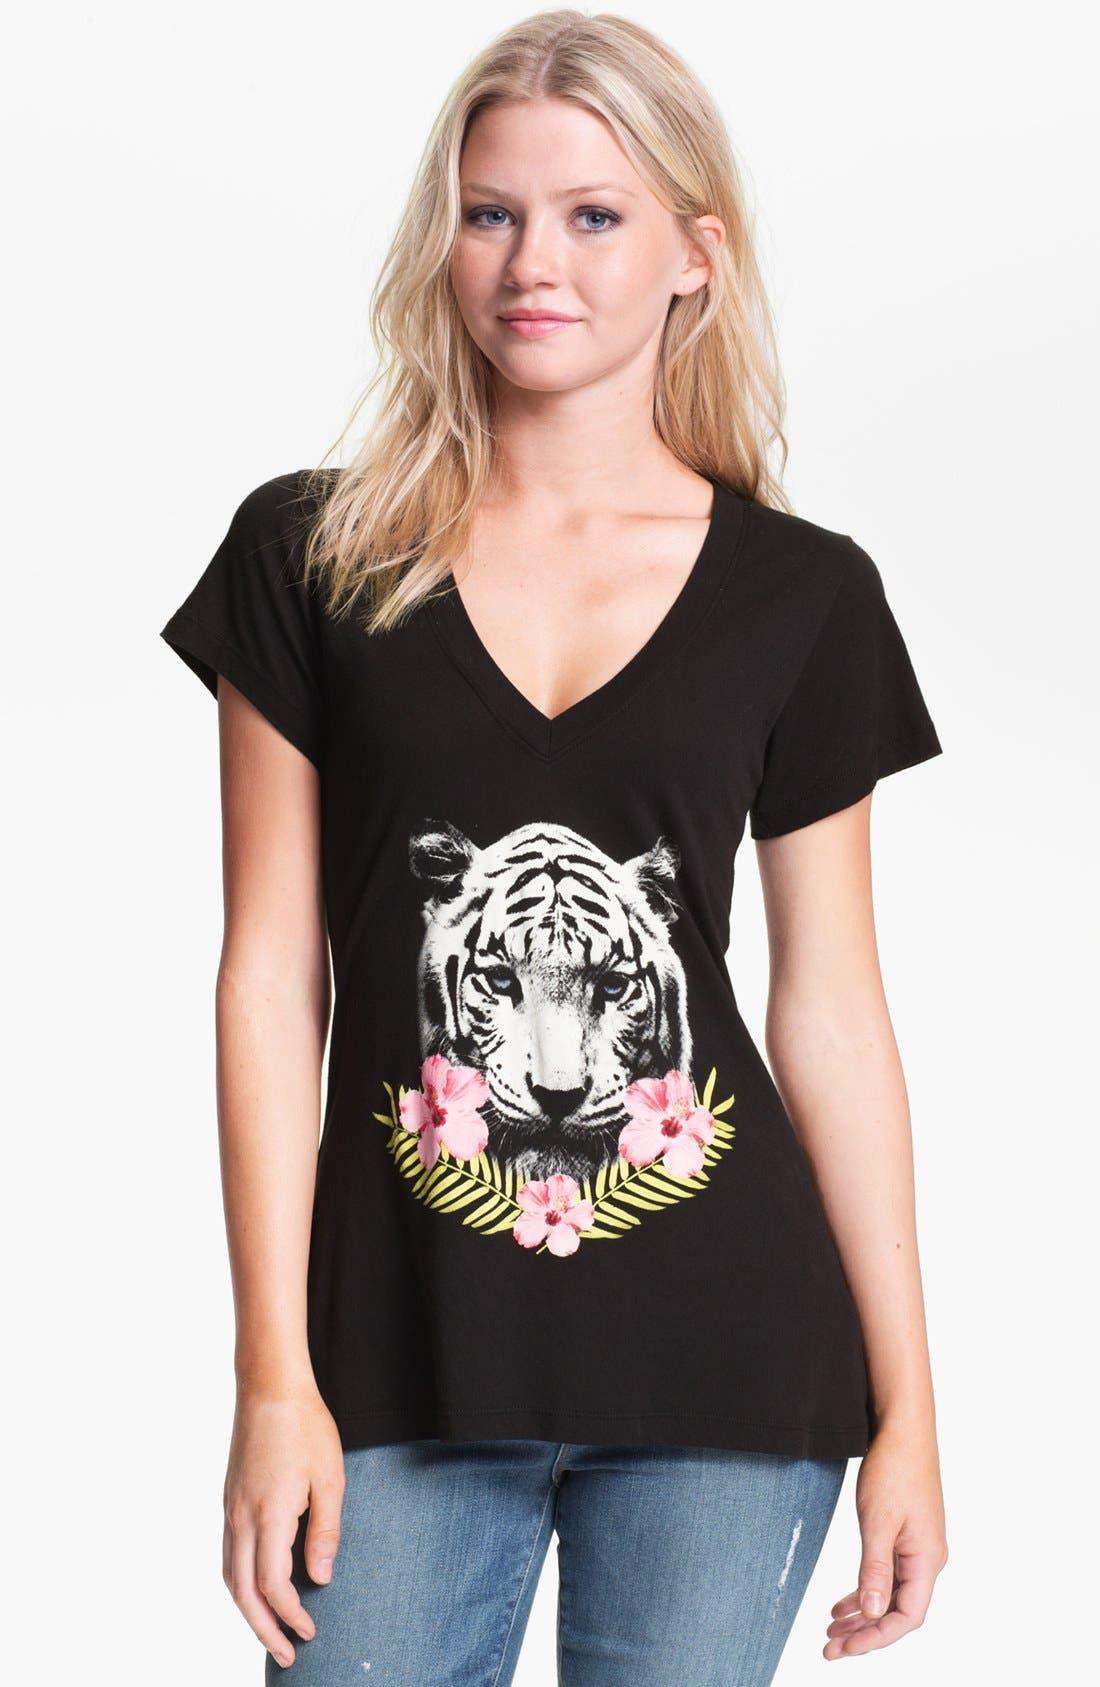 Alternate Image 1 Selected - Wildfox Tiger Graphic V-Neck Tee